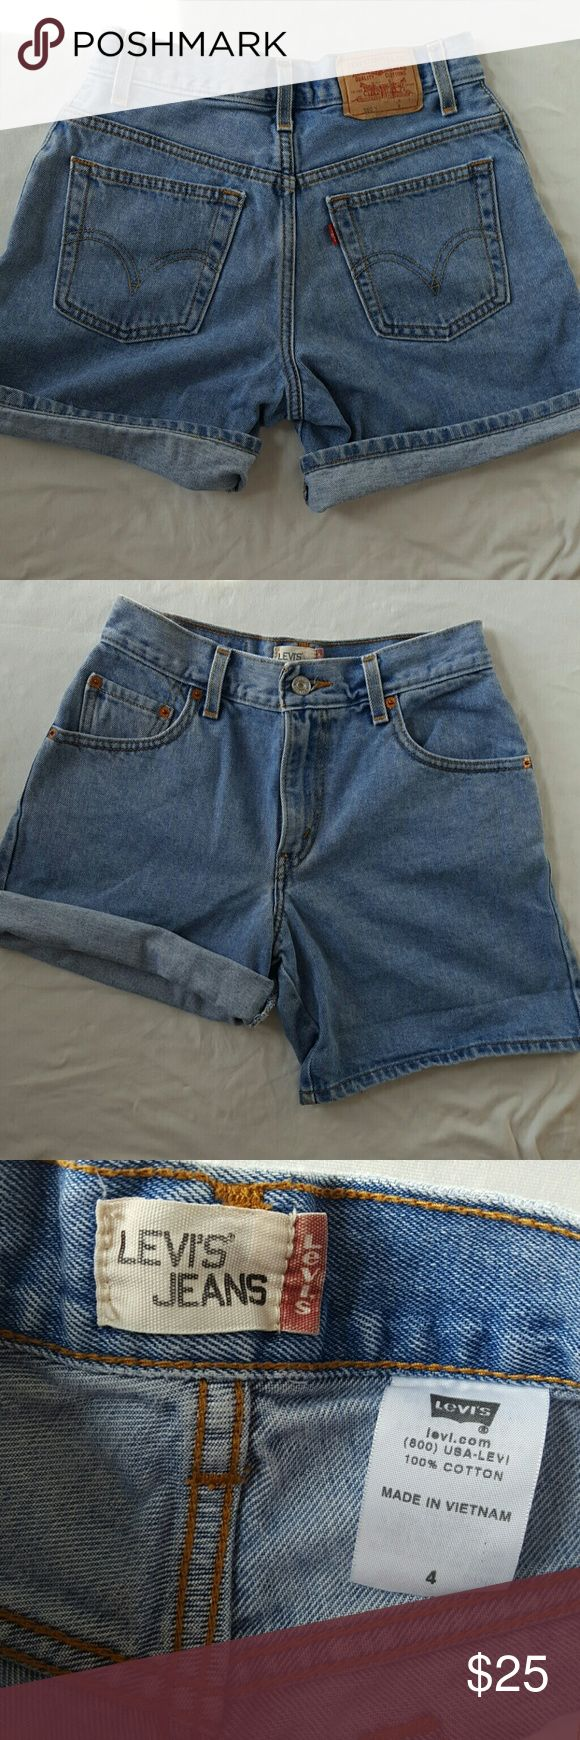 """Vintage high waisted levi's 550 shorts Vintage high waisted Levi's 550 jean shorts in size 4. Waist measures about 13"""" across or 26"""" total. Great condition. Levi's Shorts Jean Shorts"""